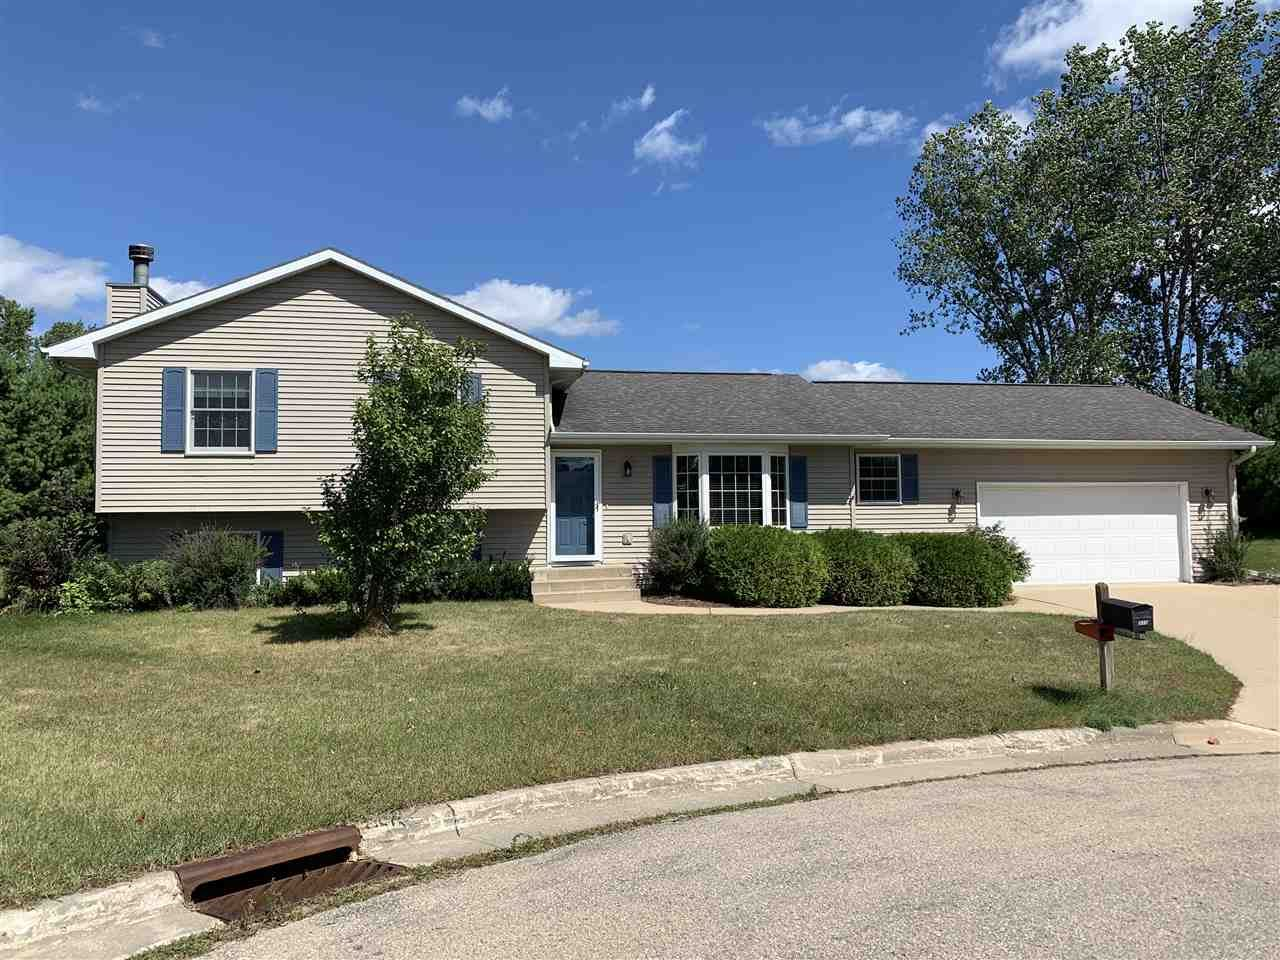 311 Hyland Ave, Tomah, WI 54660 - #: 1892654